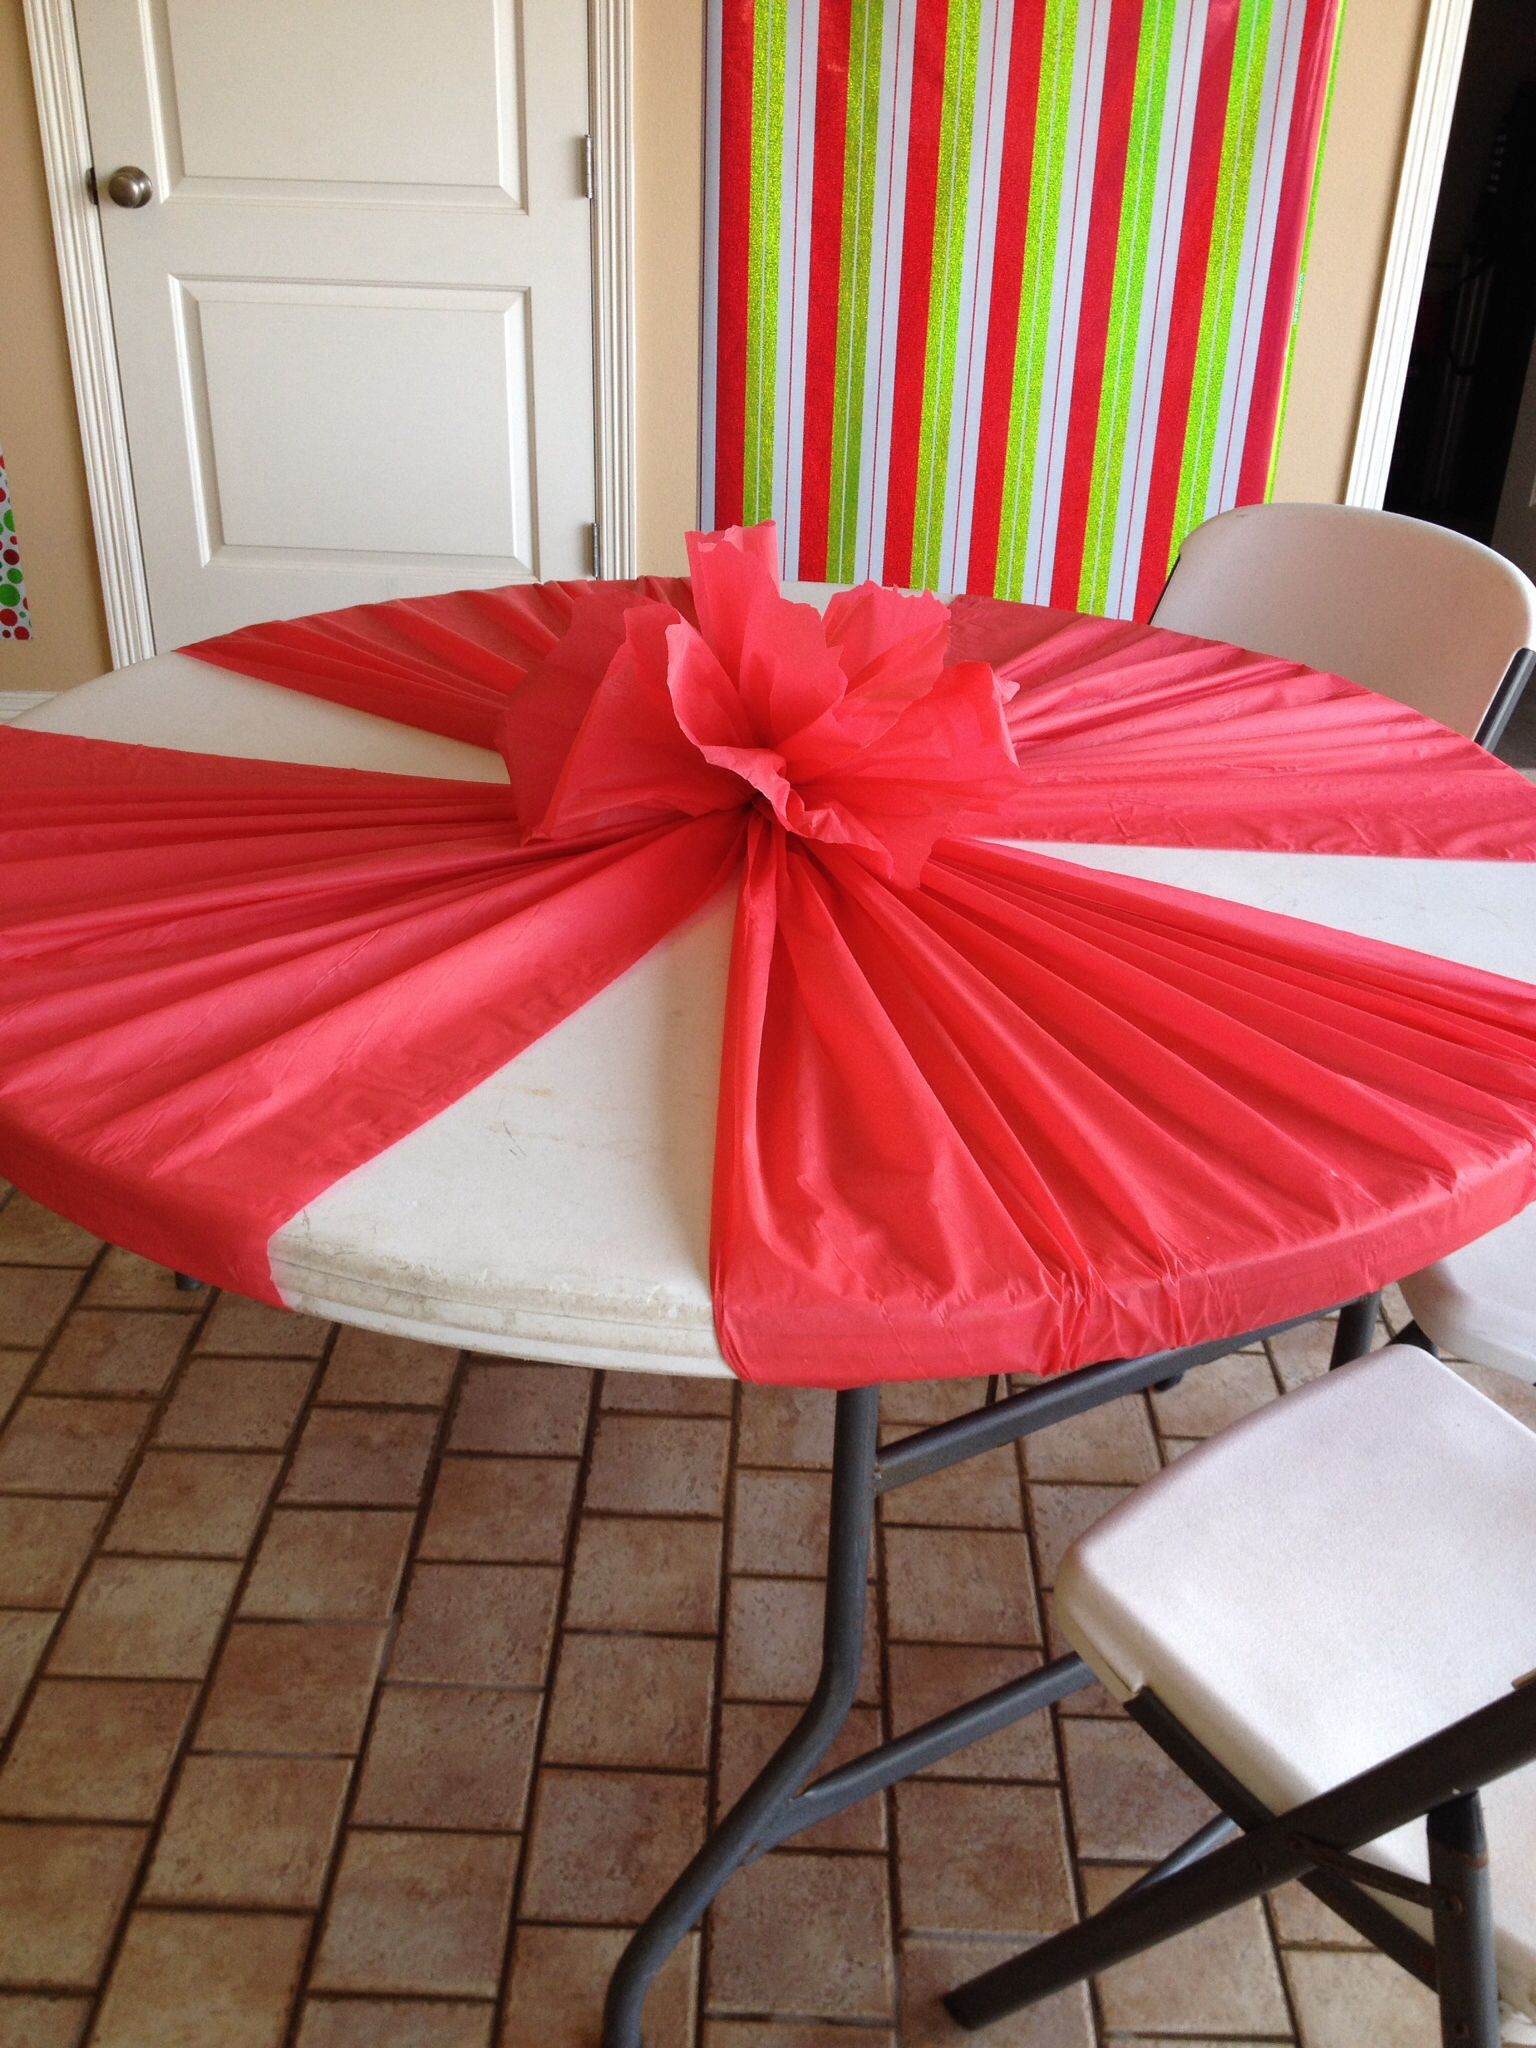 Disposable Plastic Chair Covers For Parties Fisher Price Musical Might Be Fun With Two Colors That Cover The Whole Table